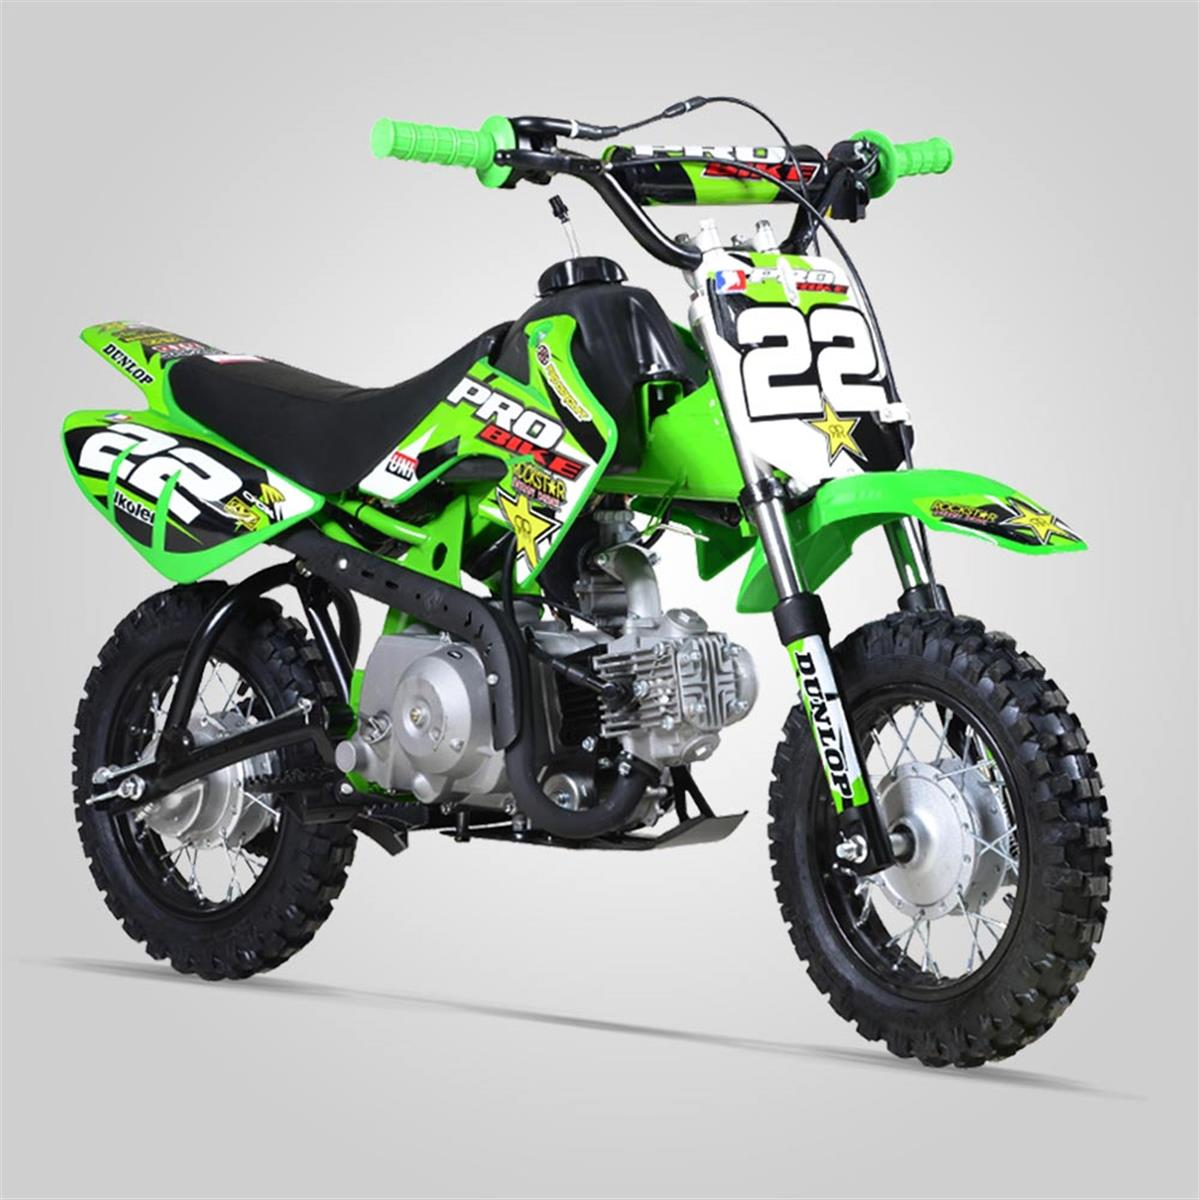 dirt bike pit bike probike 50cc vert 2017 smallmx dirt bike pit bike quads minimoto. Black Bedroom Furniture Sets. Home Design Ideas